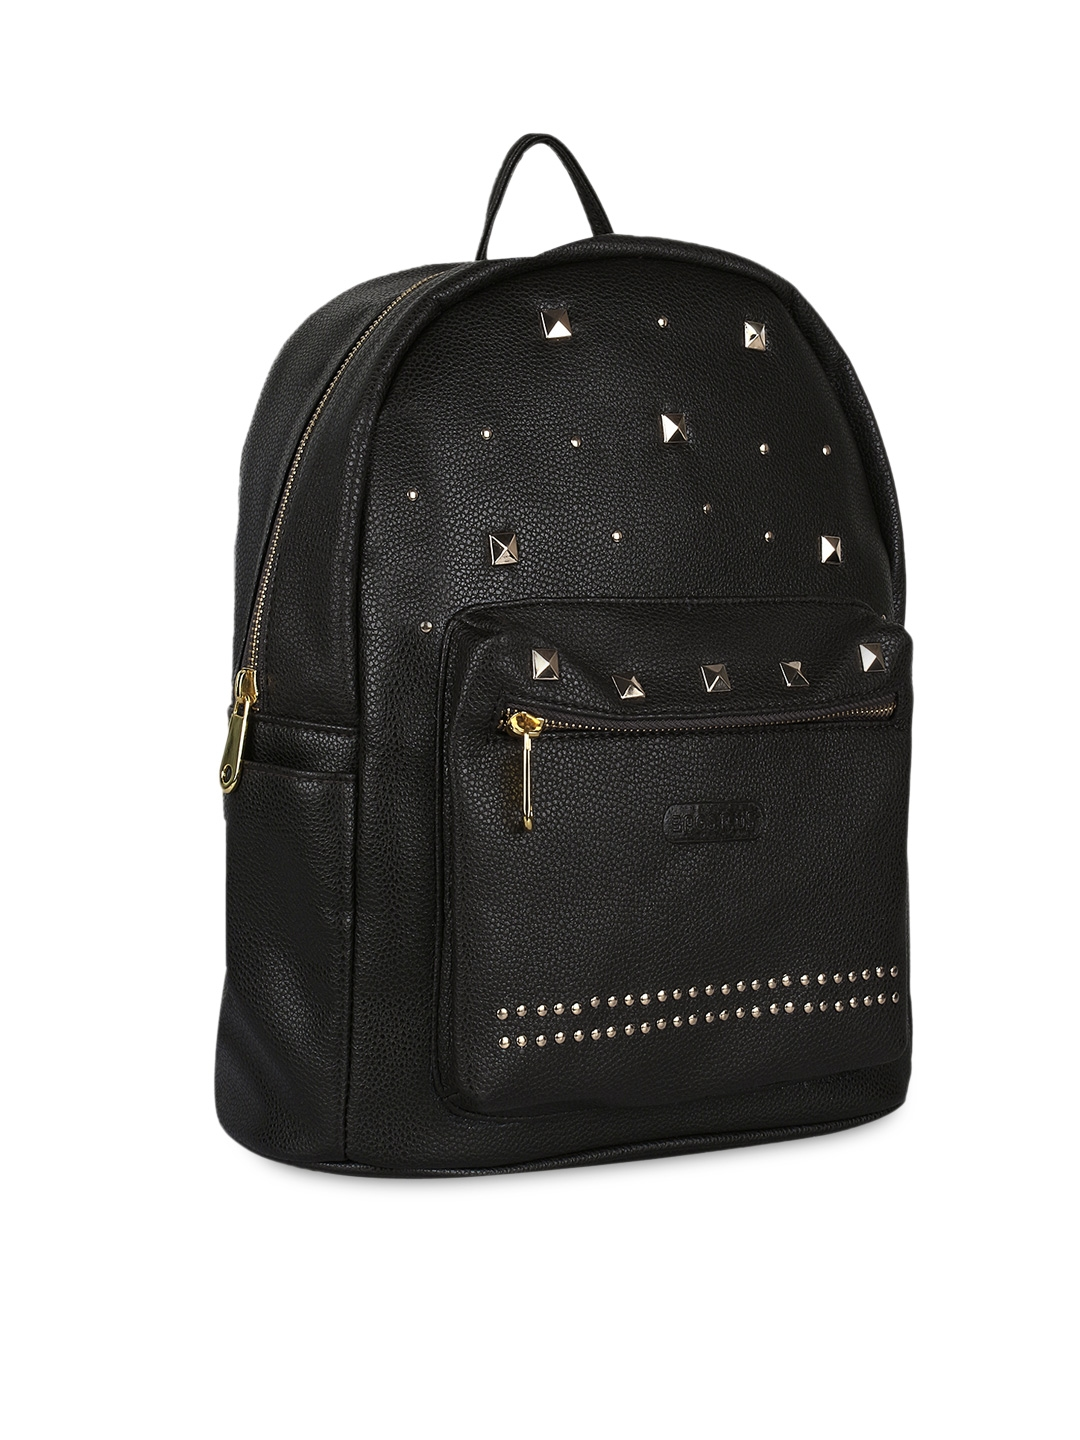 5fce1cb5954acf Buy Bags.R.us Women Black Faux Leather Studded Backpack - Backpacks ...